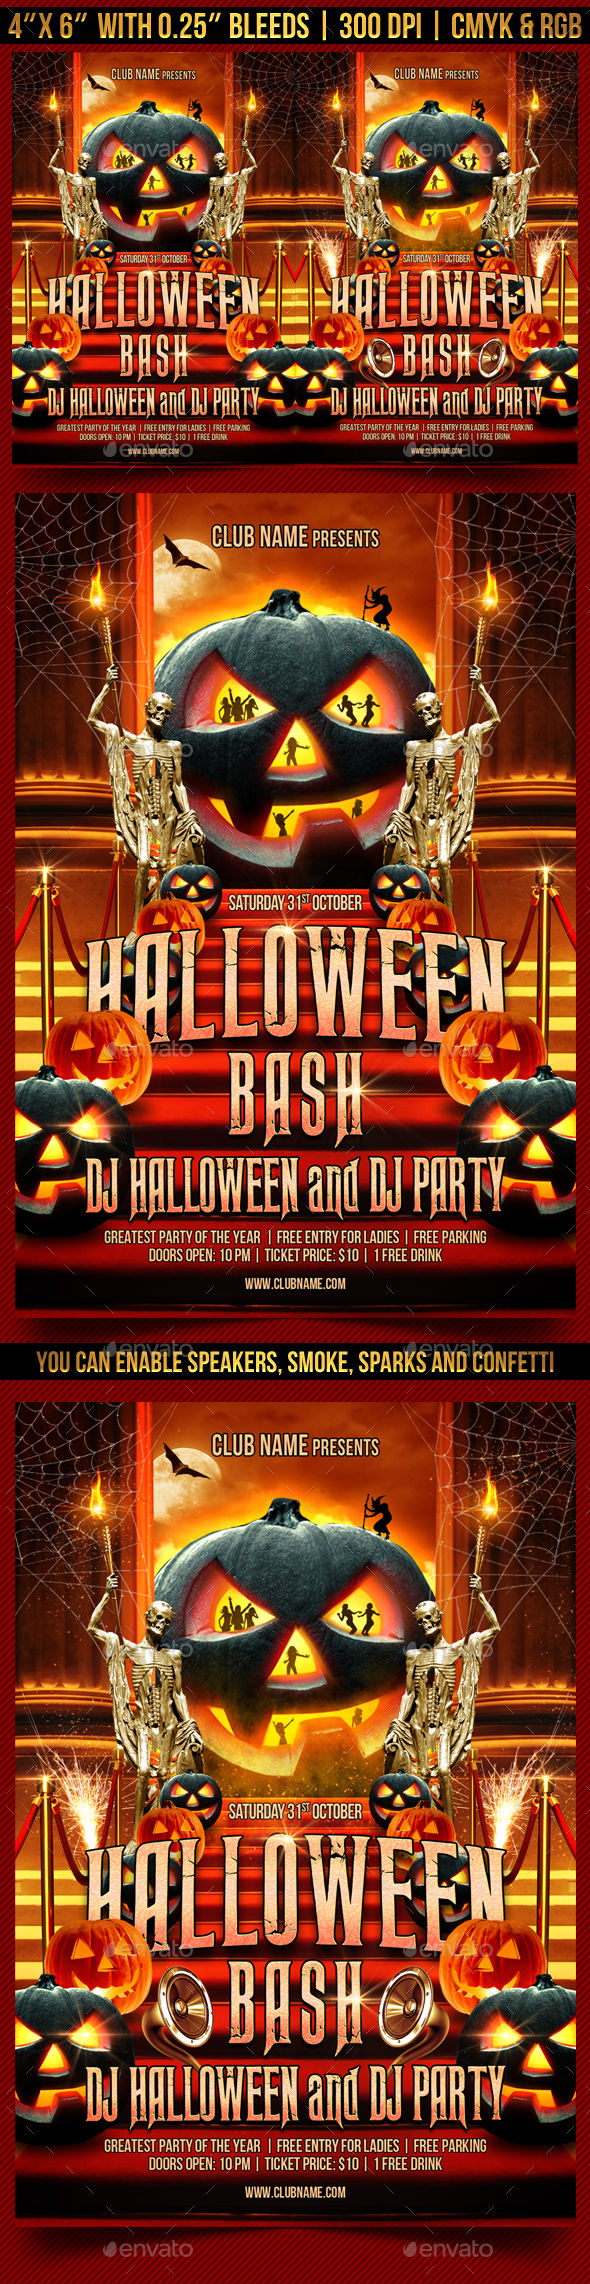 Halloween Bash Flyer Template by Gugulanul (Halloween party flyer)